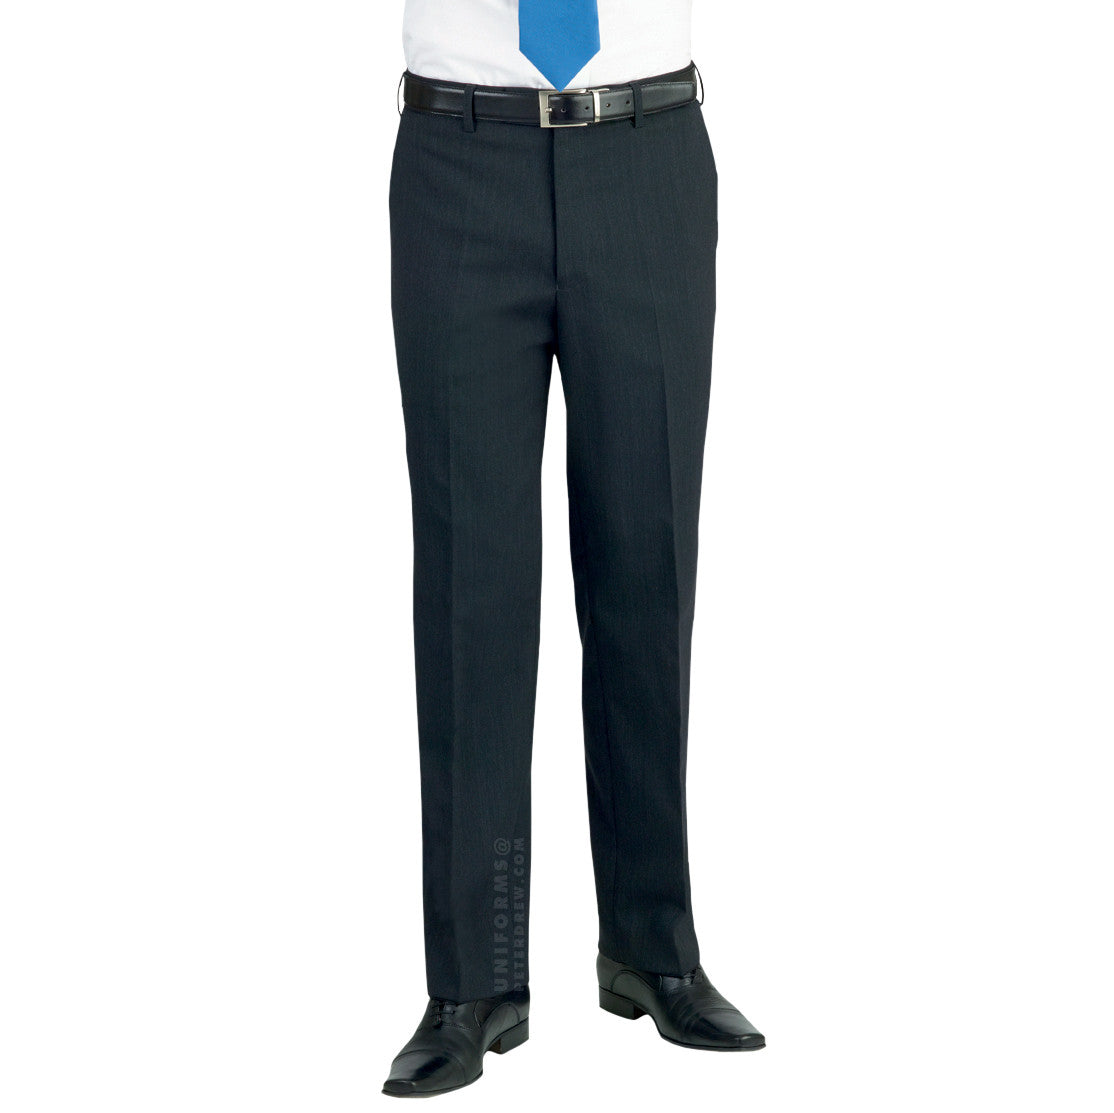 Aldwych Trousers Charcoal - peterdrew.com